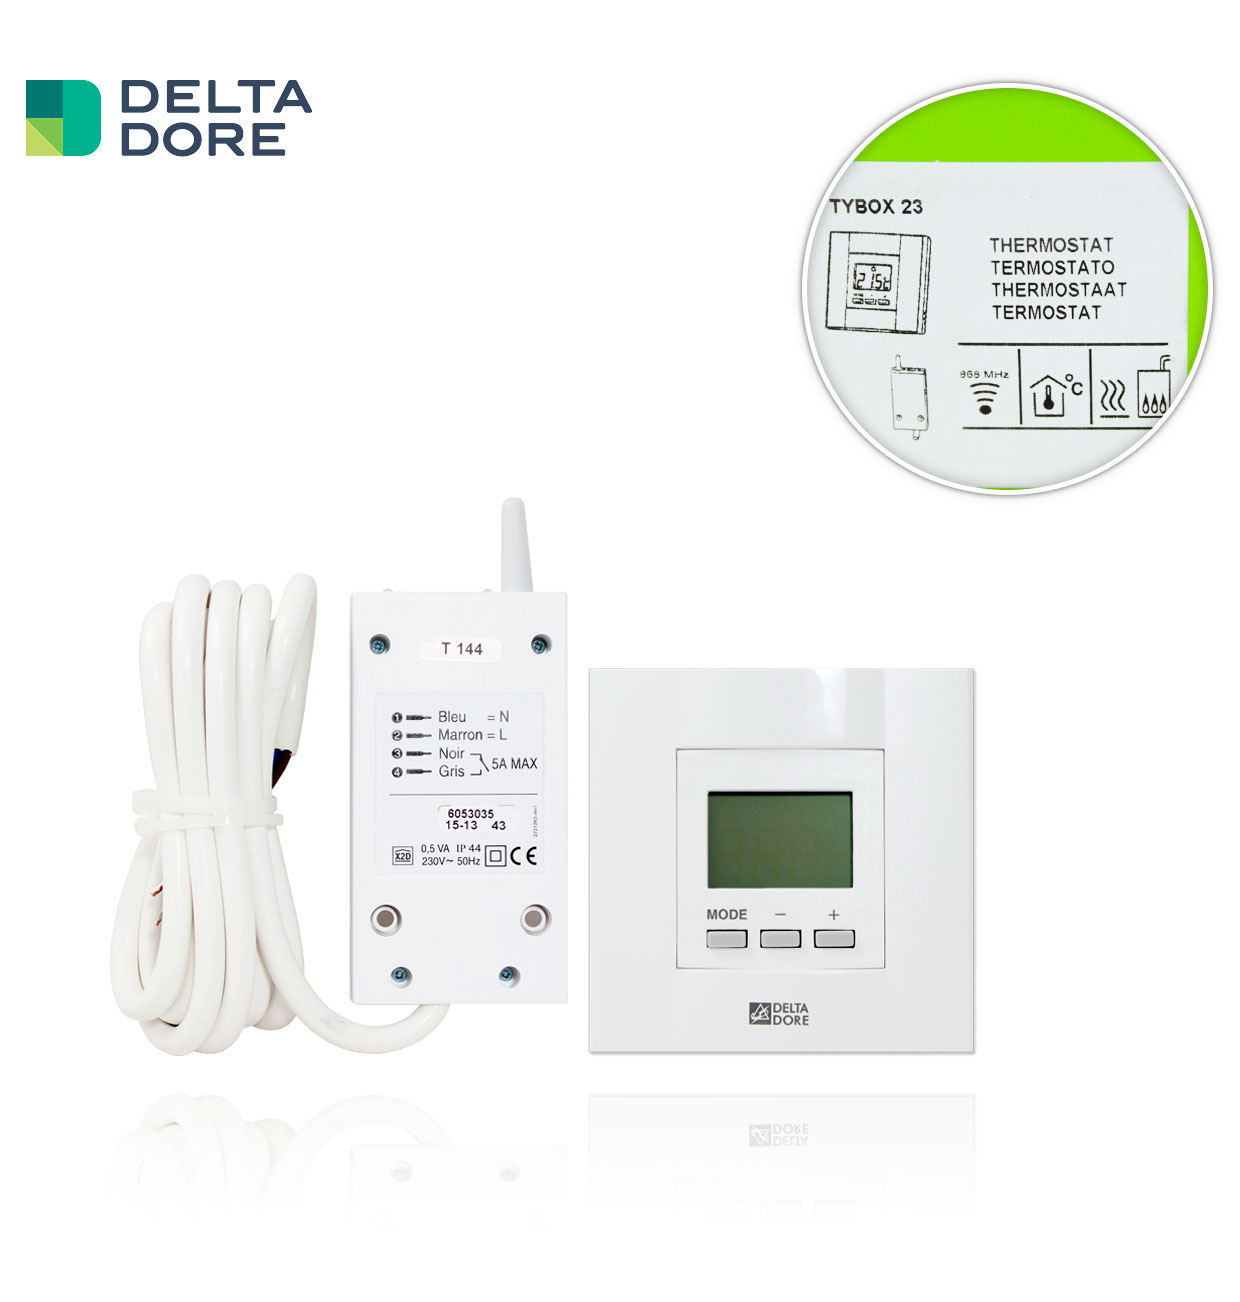 TYBOX 23 / DIANA D10 RADIO TERMOSTATO DIGITAL DELTA DORE